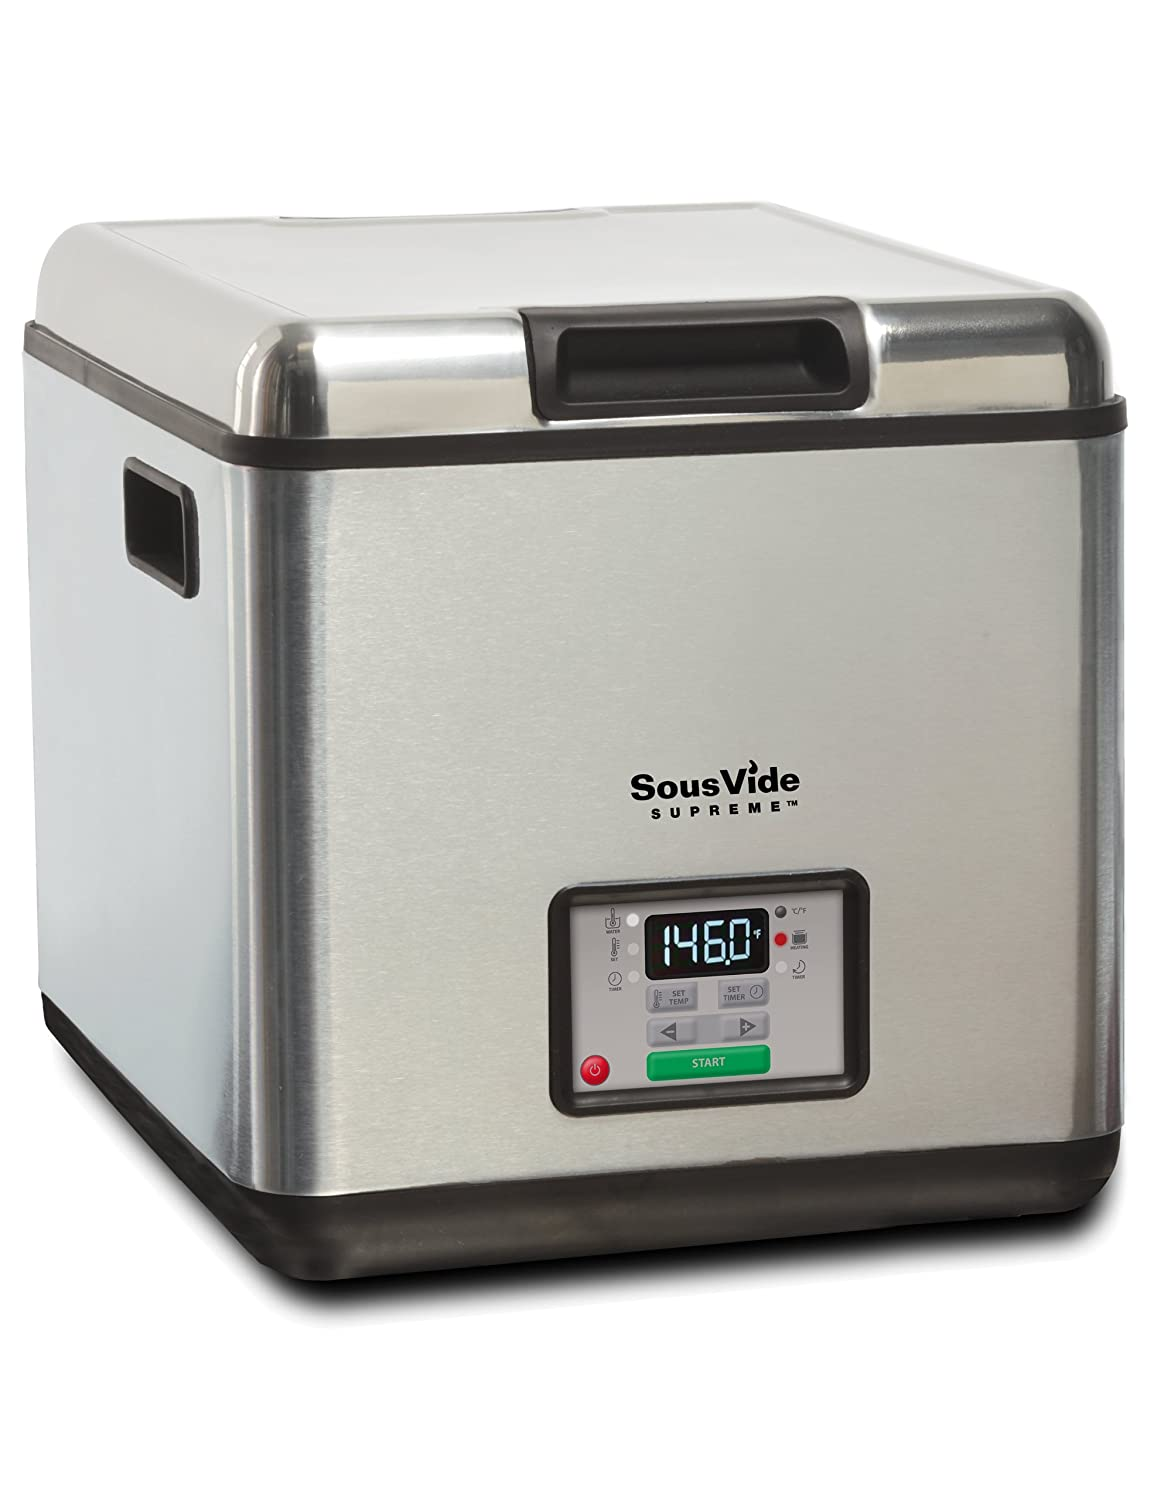 So easy to make gourmet meals with this sous-vide water oven